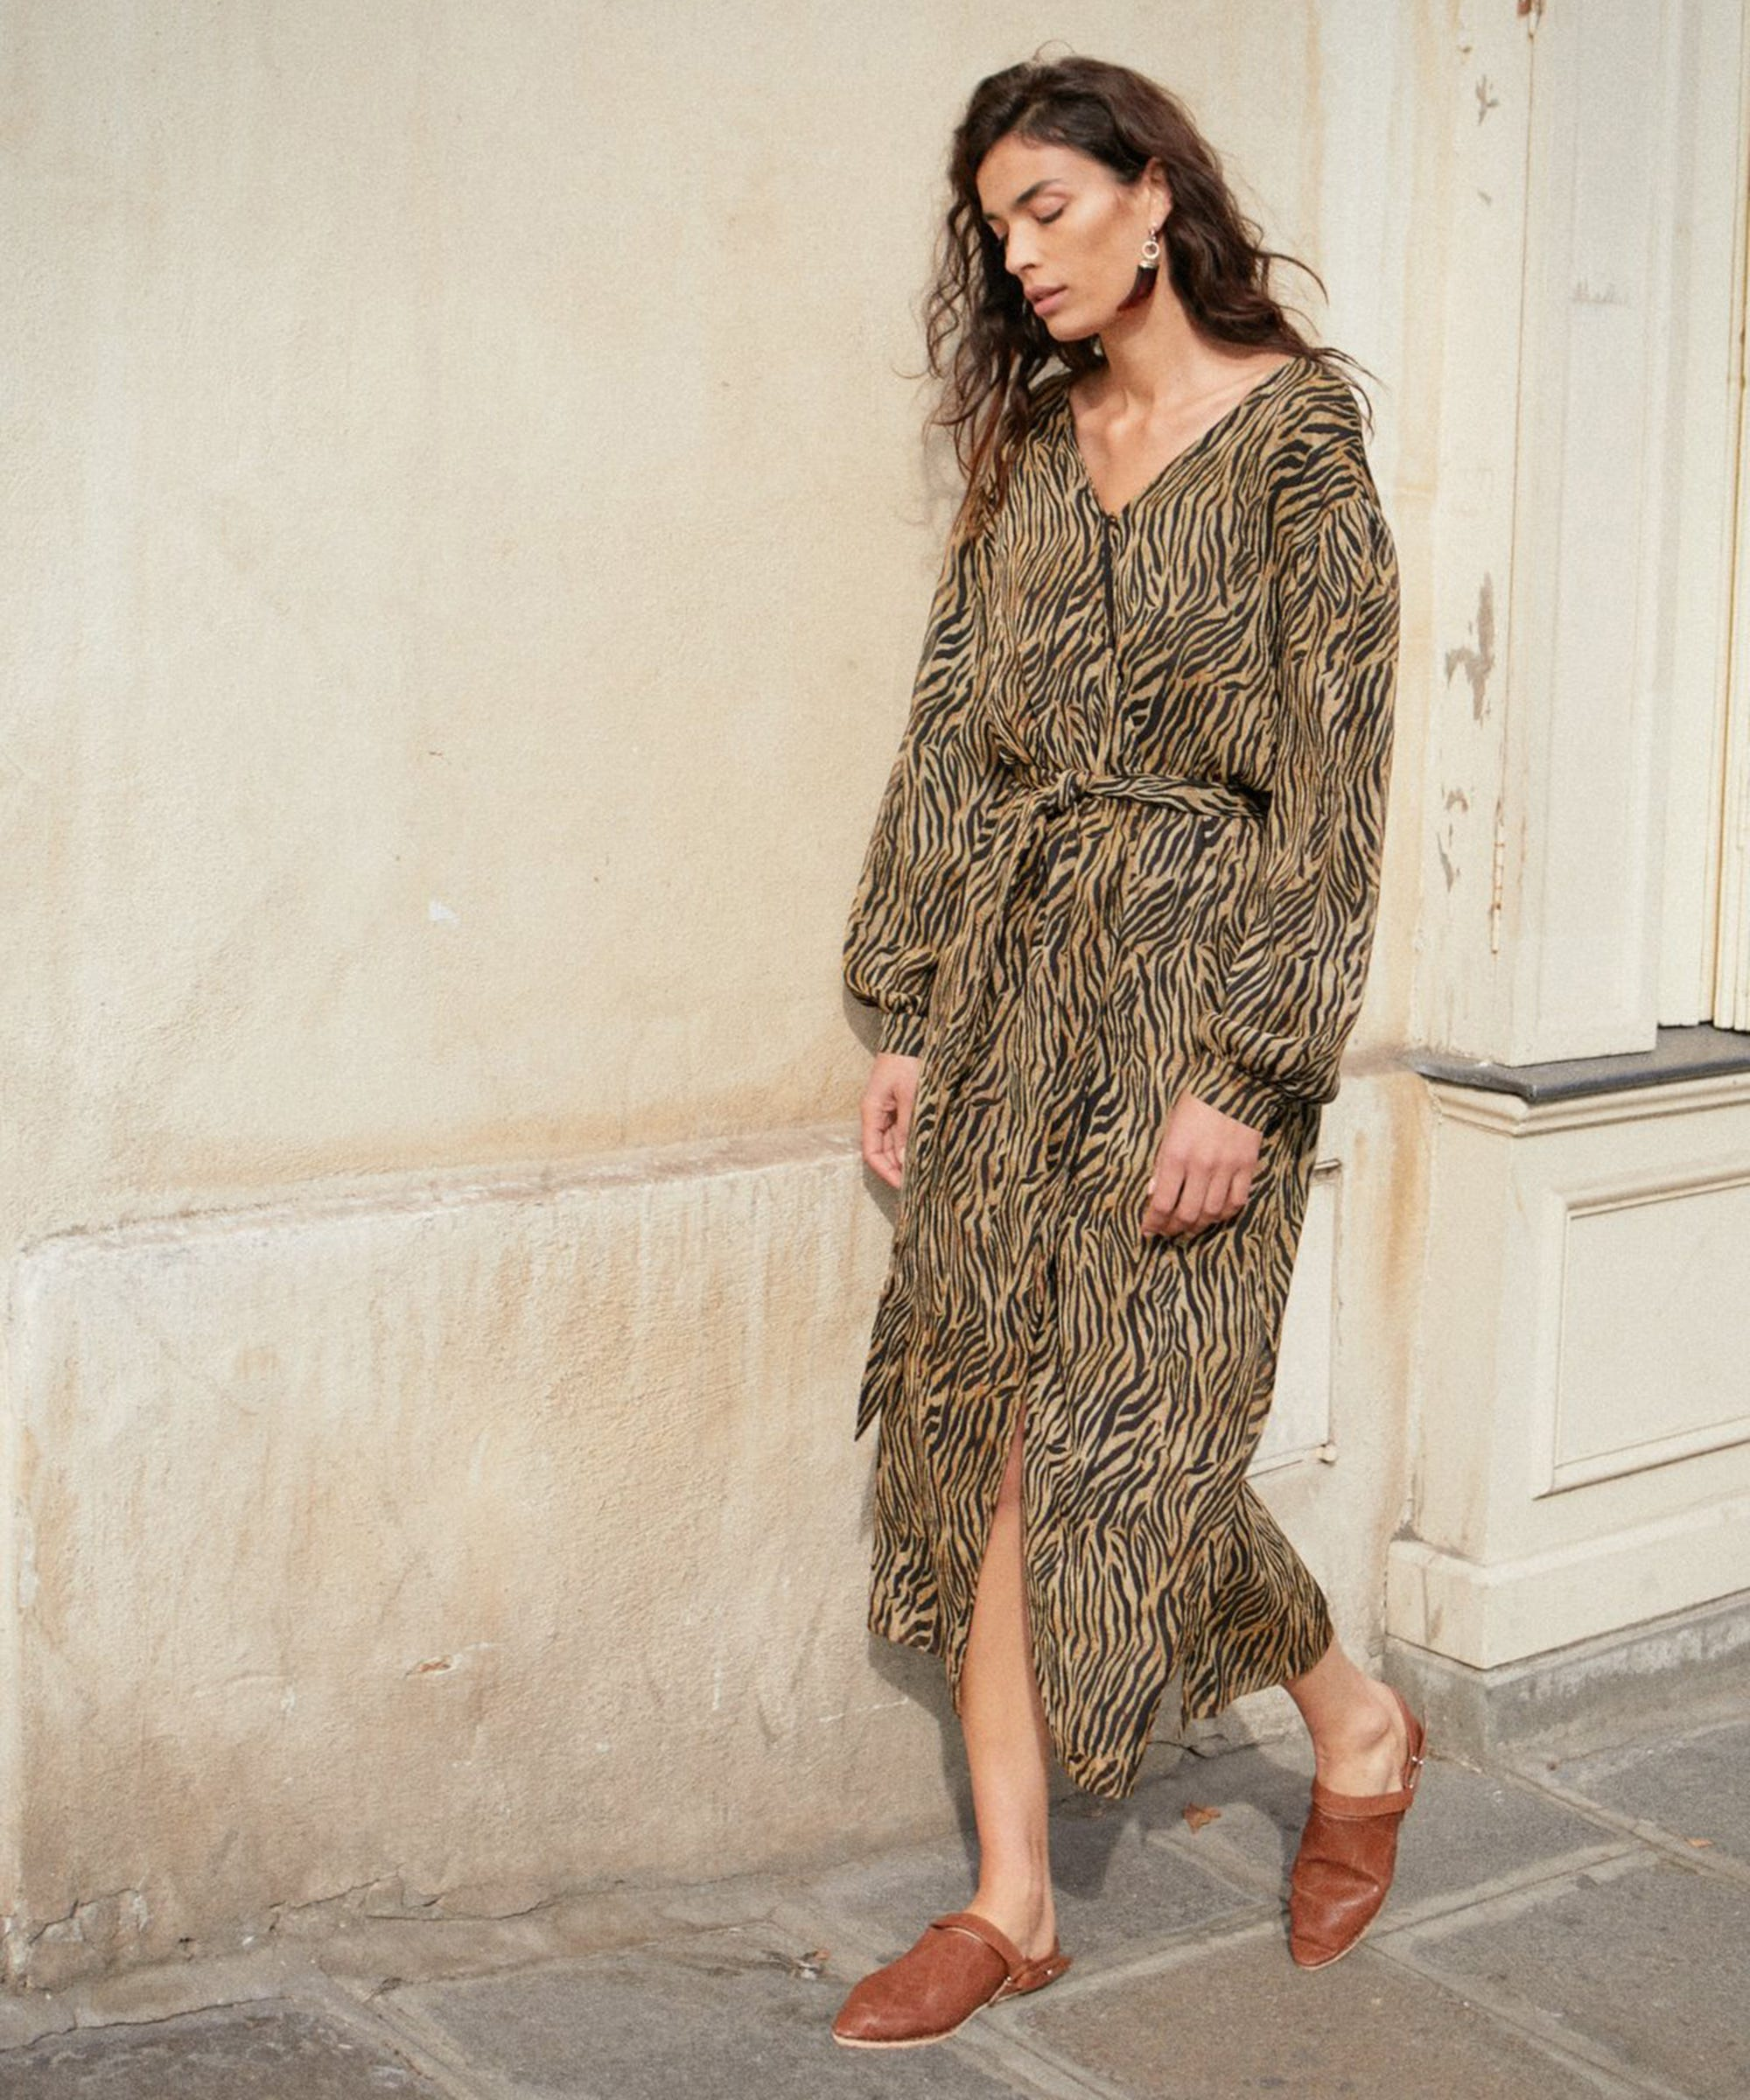 ed7af67ffbeb Animal Print Dresses That Will Bring Out Your Wild Side